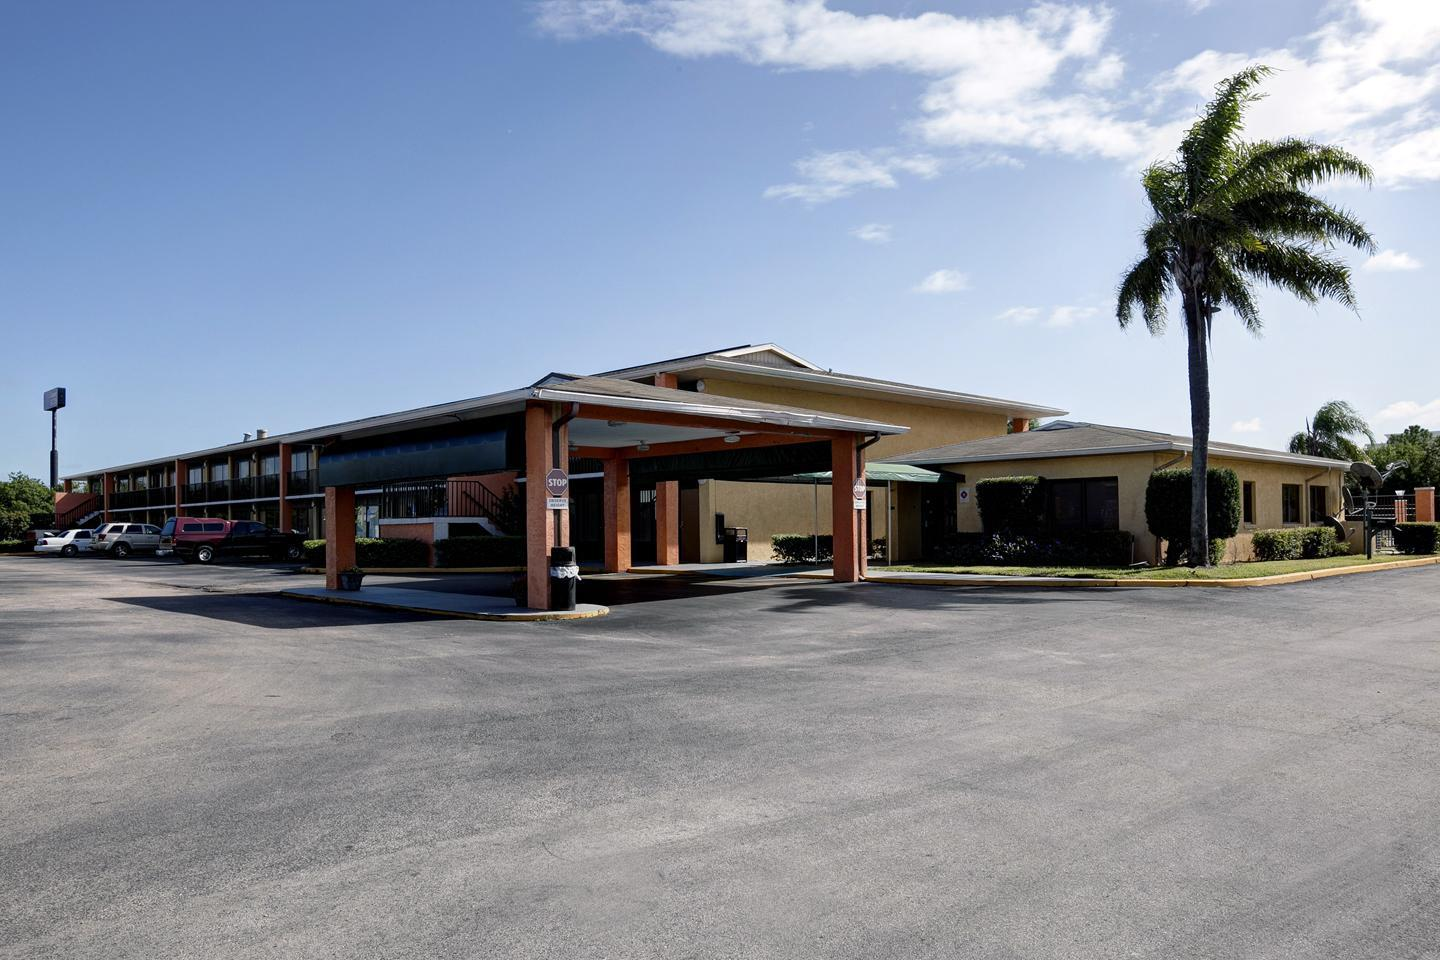 Cheap Motel Room Rates Fort Pierce, Fl Hotels & Motels - See All Discounts